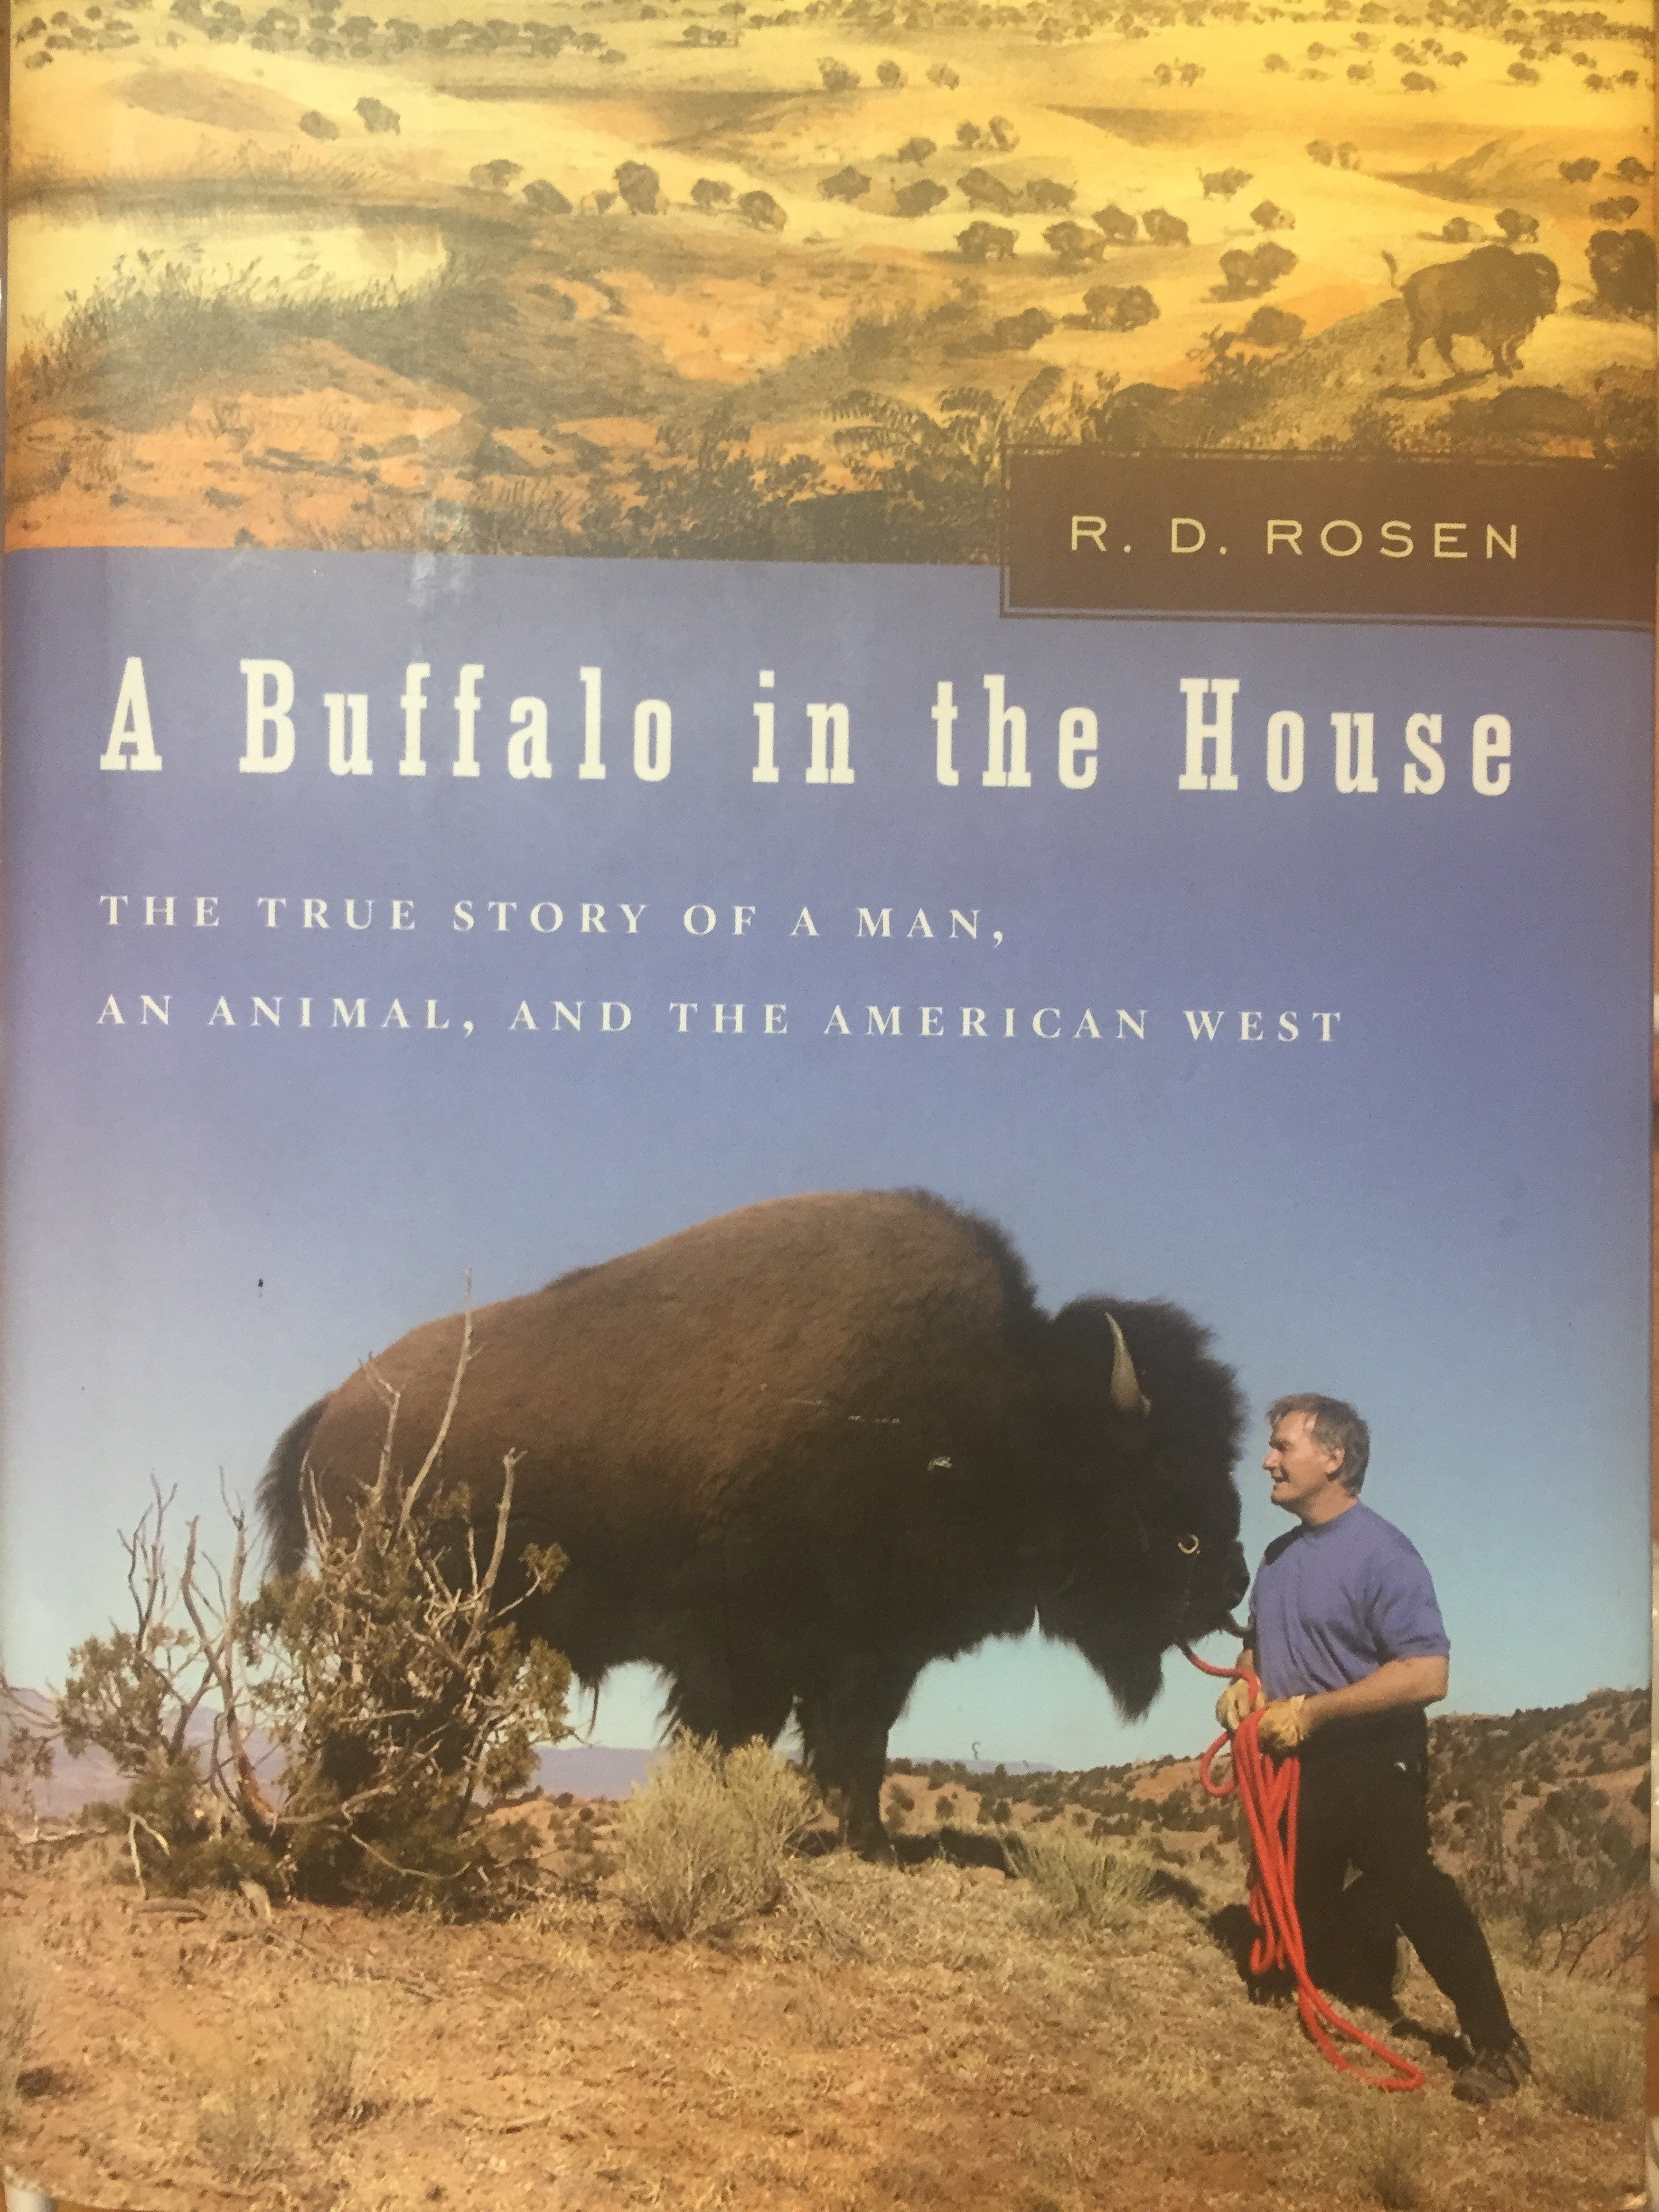 BOOKS - A Buffalo in the House